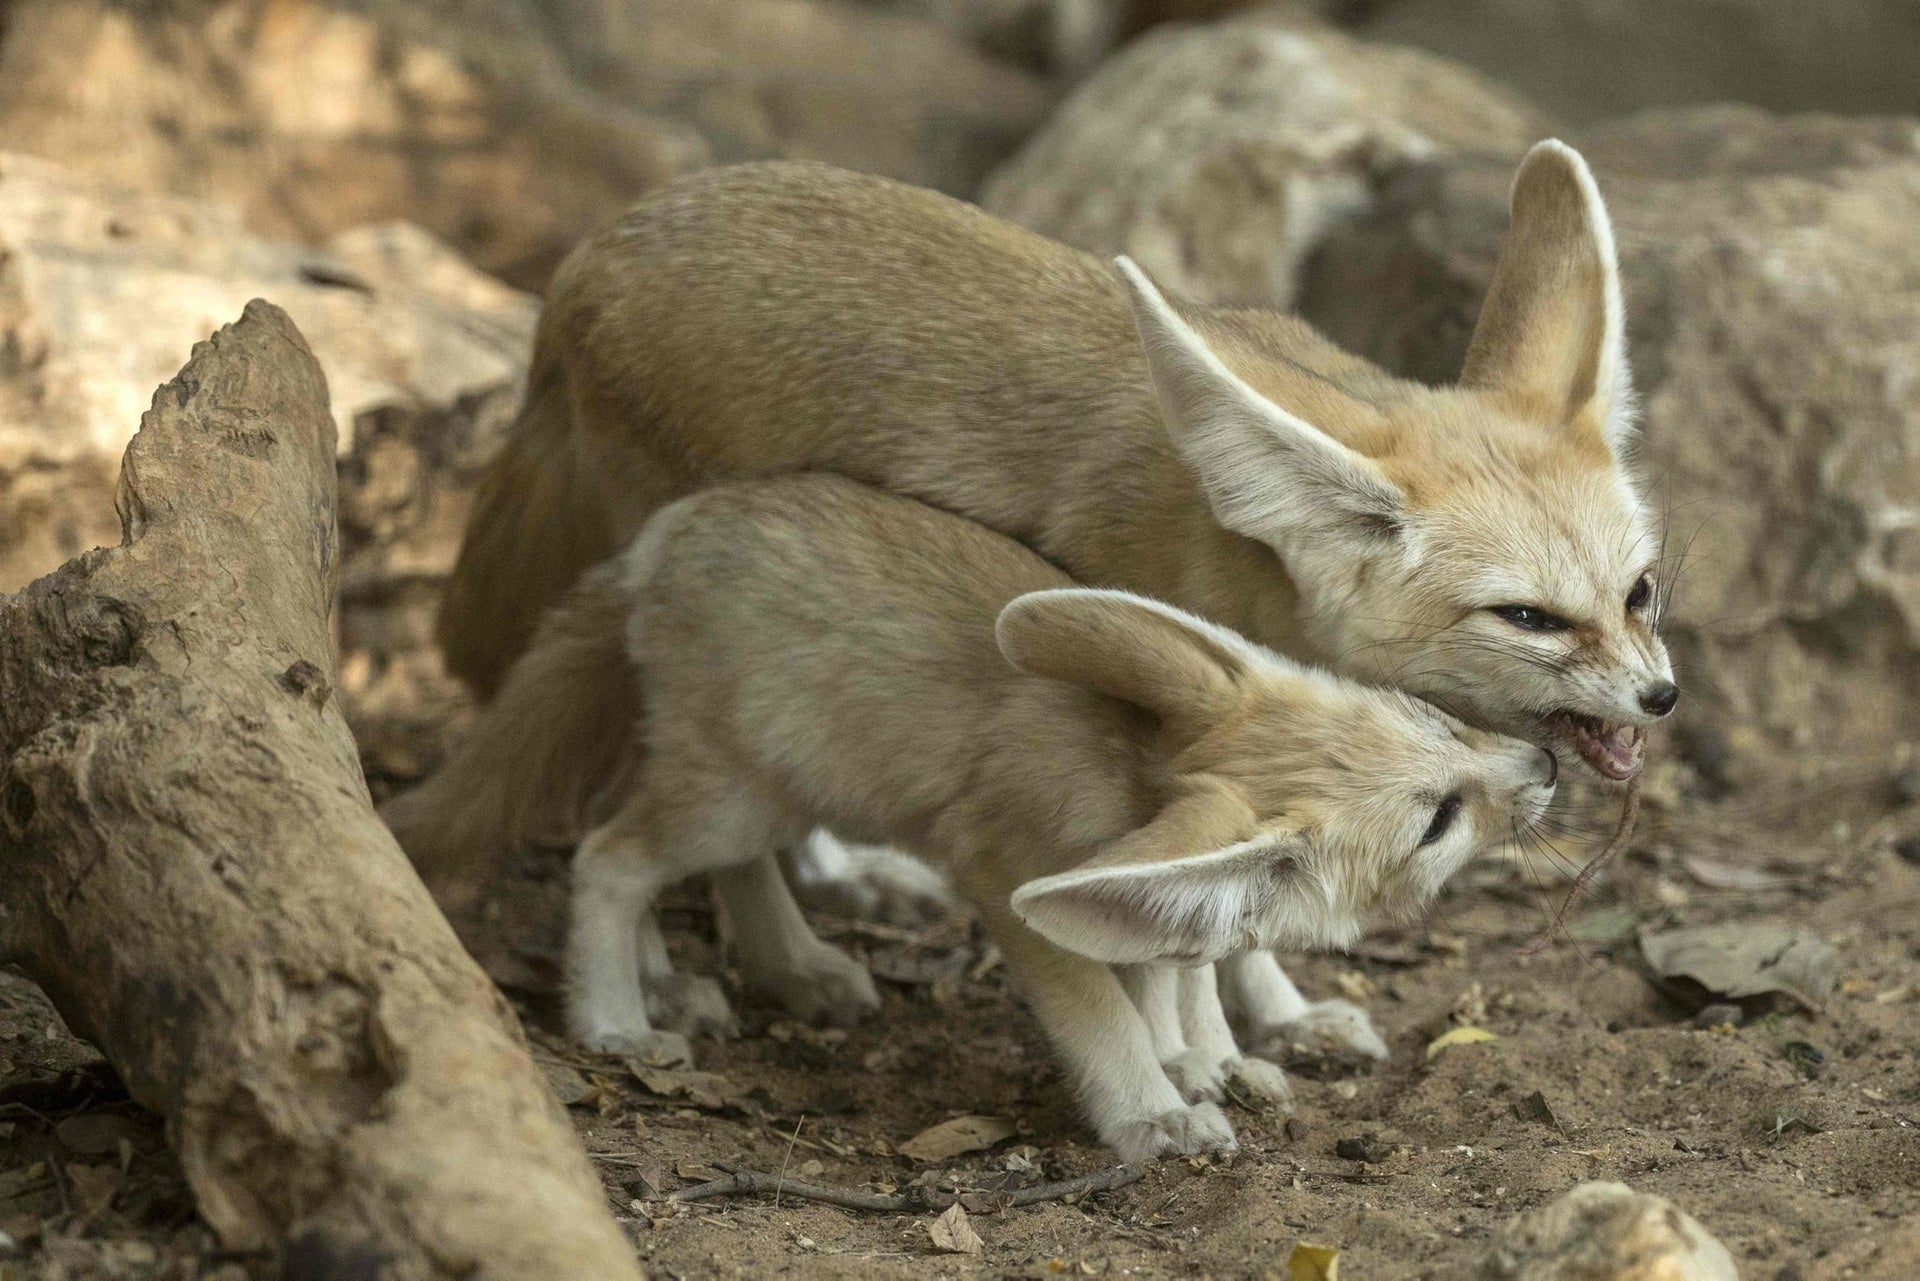 A picture taken on November 6, 2016 shows a seven-week old fennec fox (Vulpes zerda) and his mother with a mouse in her mouth at the Ramat Gan Safari zoo near the Israeli coastal city of Tel Aviv.